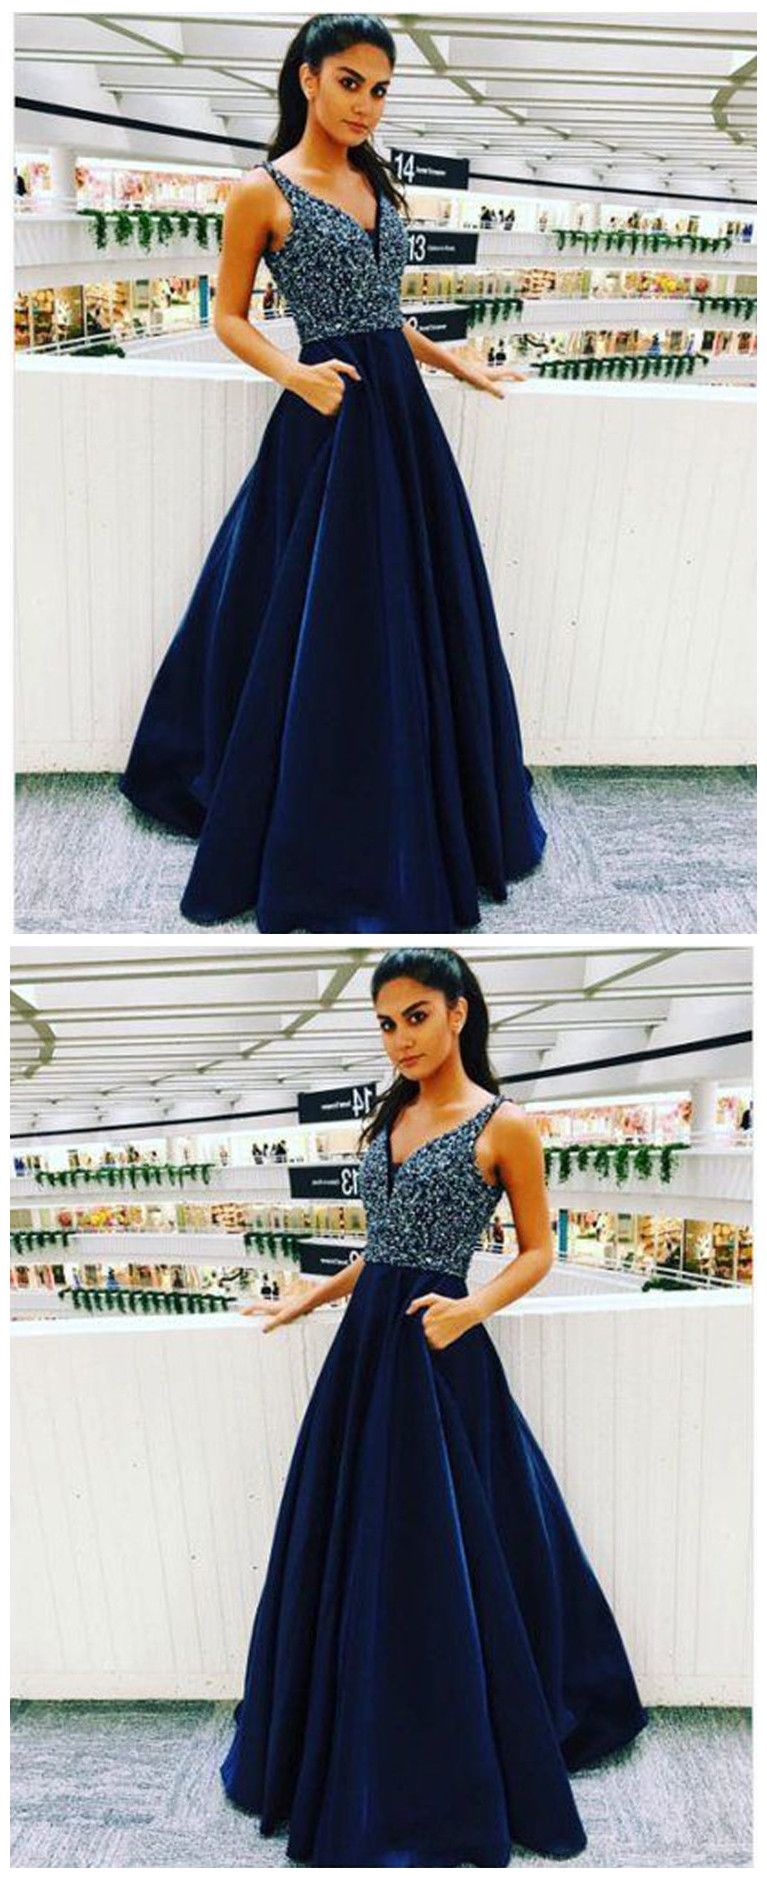 Elegant aline v neck navy blue satin long prom dresses with beaded